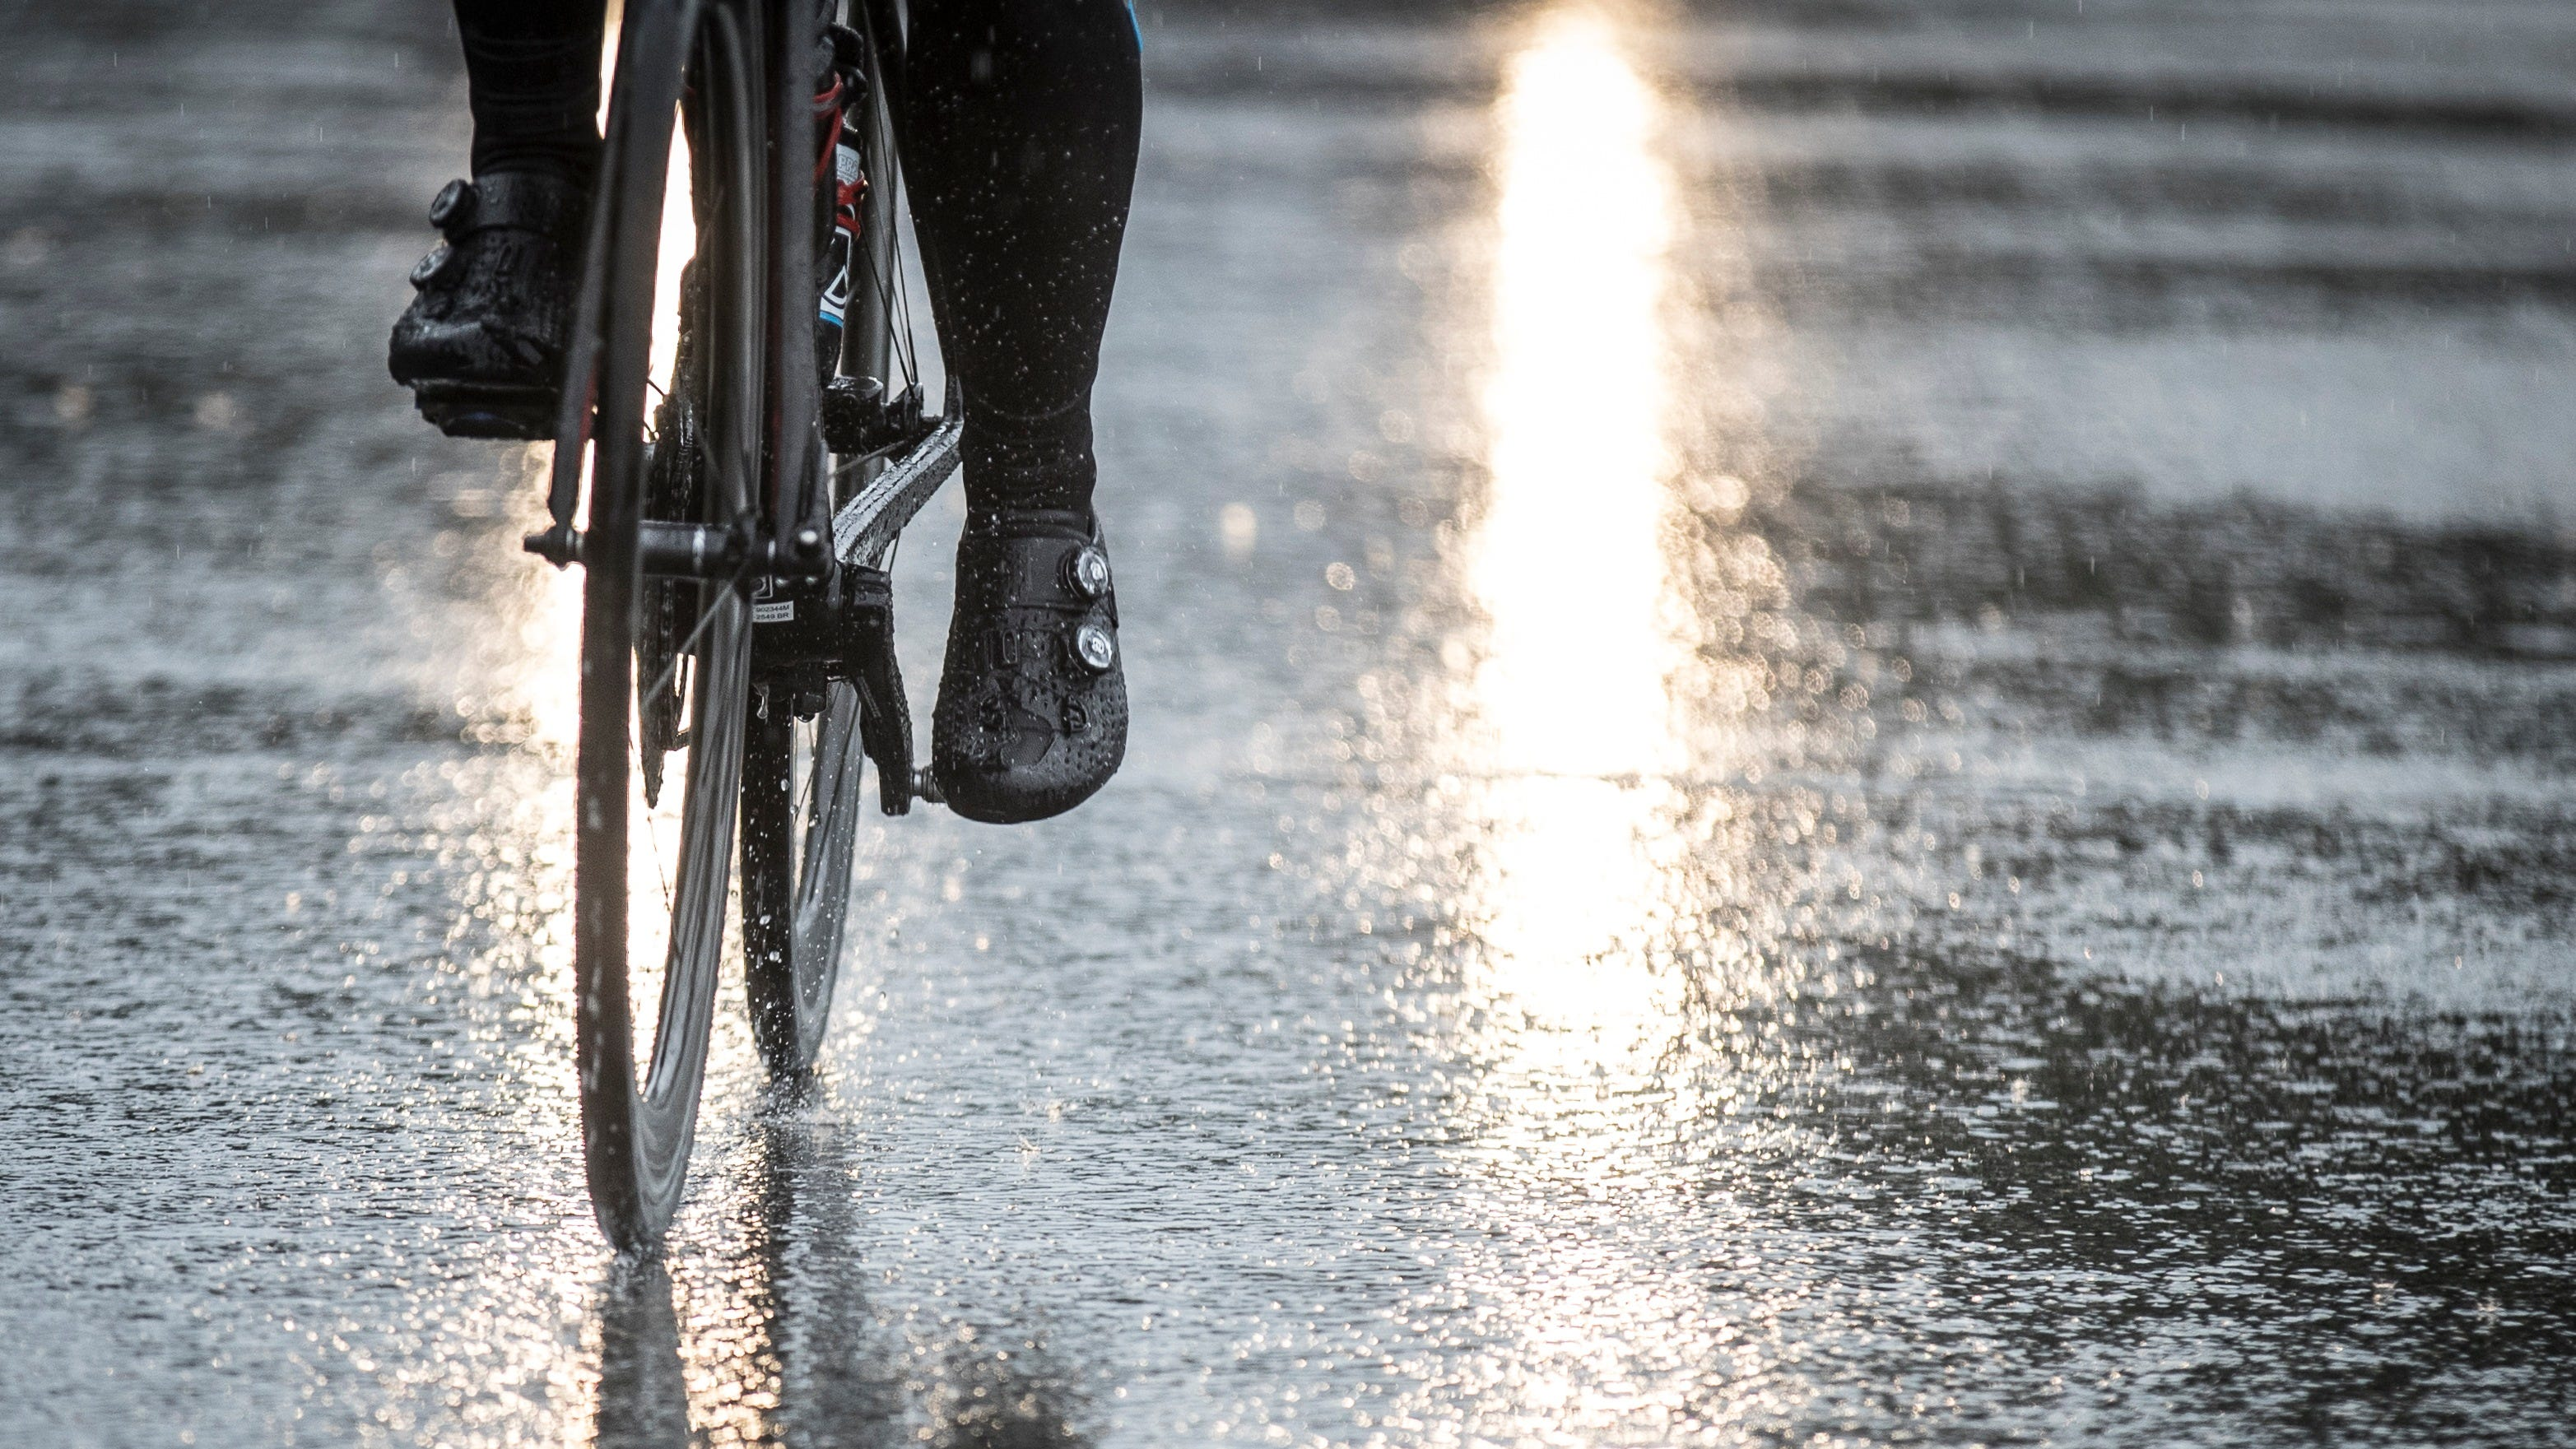 How to look after your bike during winter